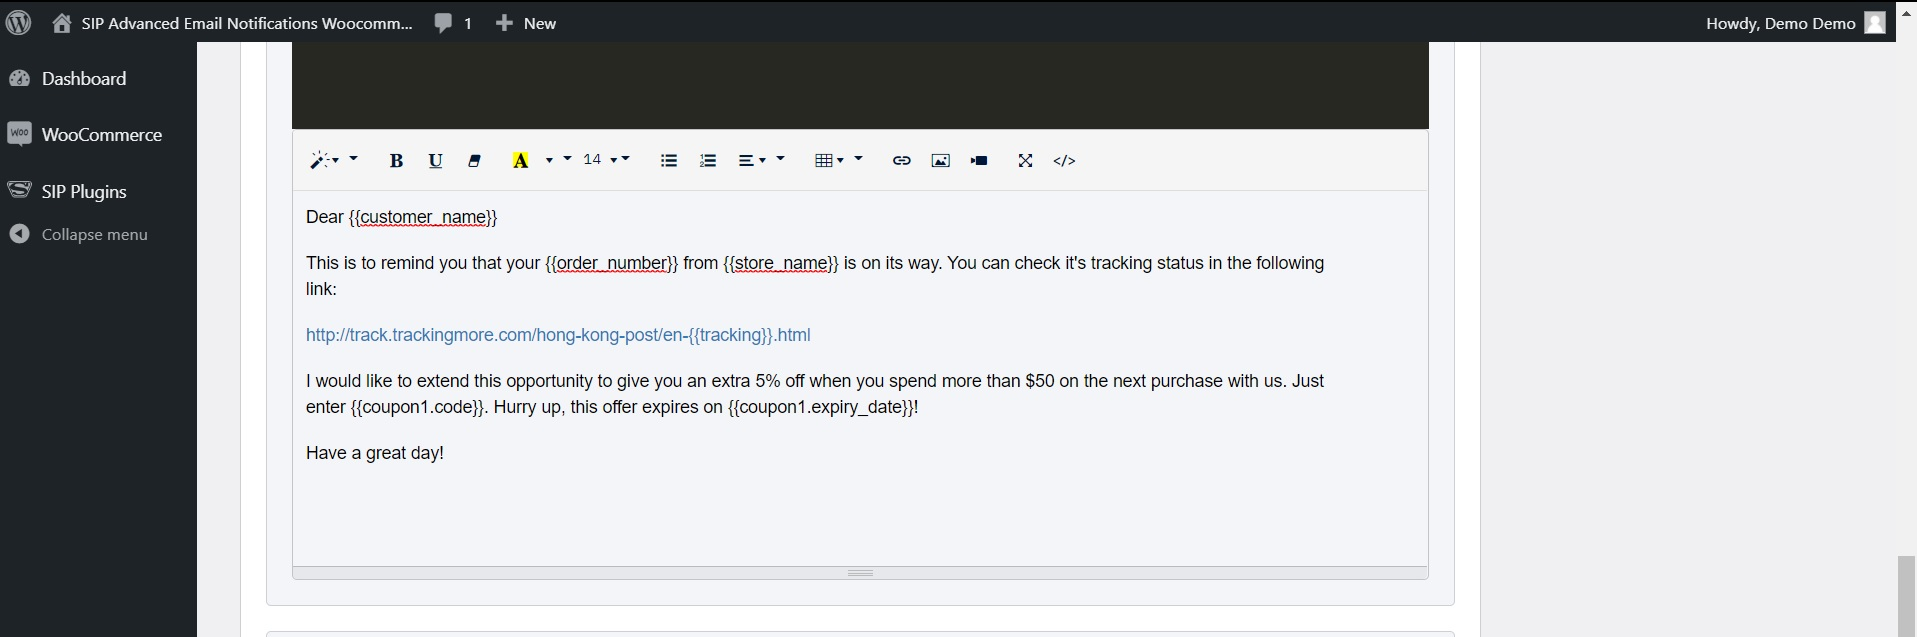 Now, you can create the email by using the text editor and adding the shortcodes